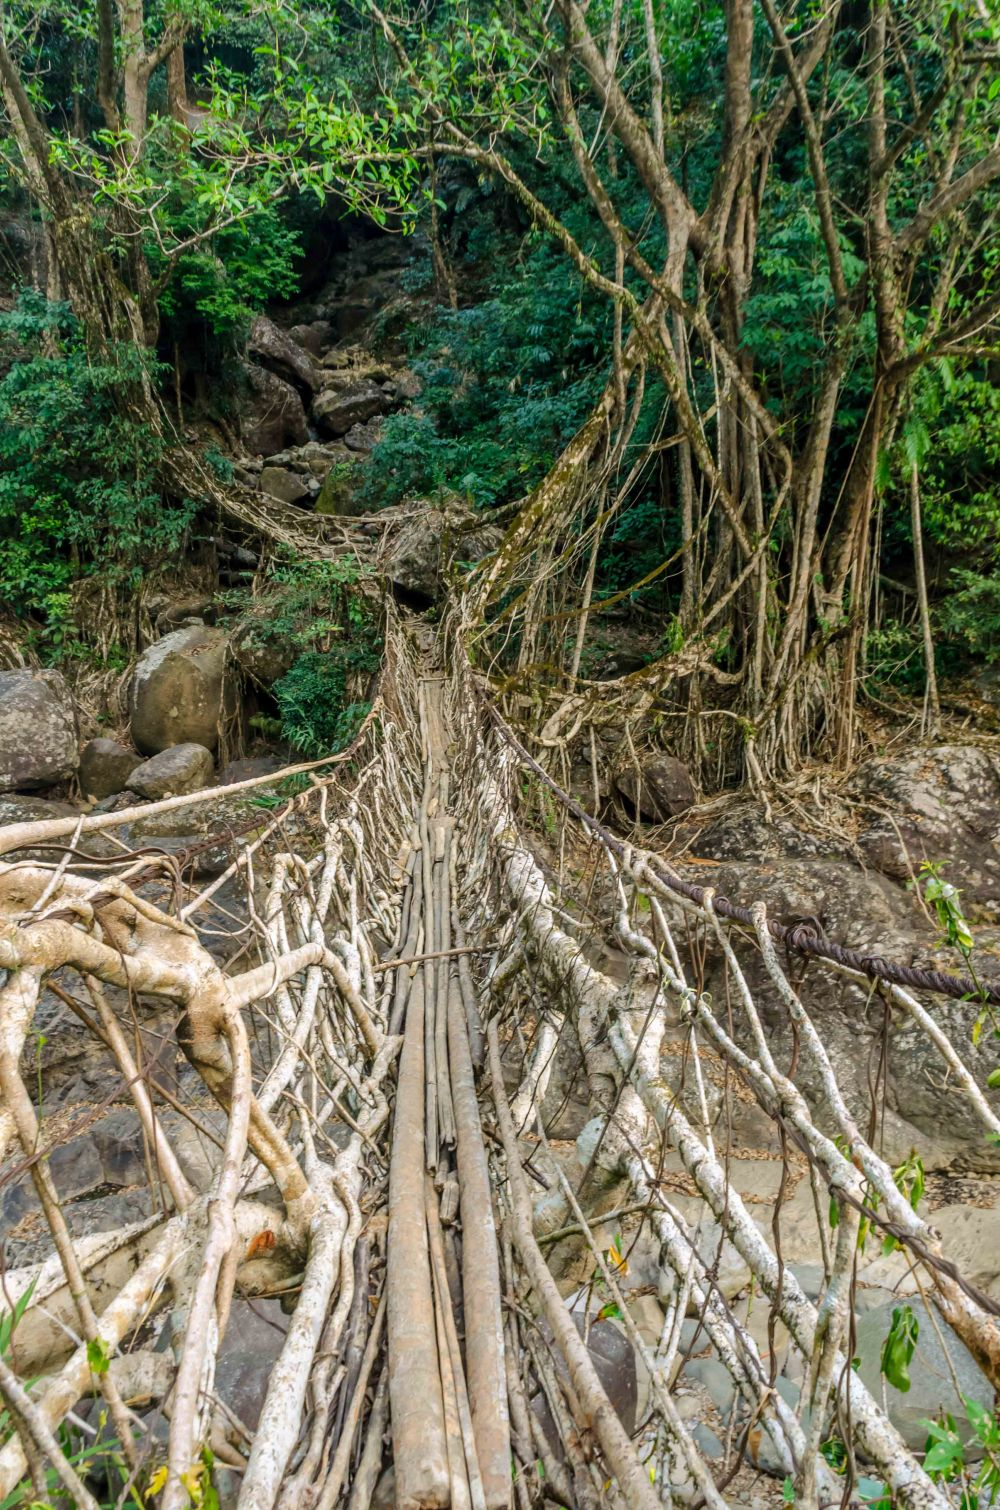 Nongriat Living Root Bridge